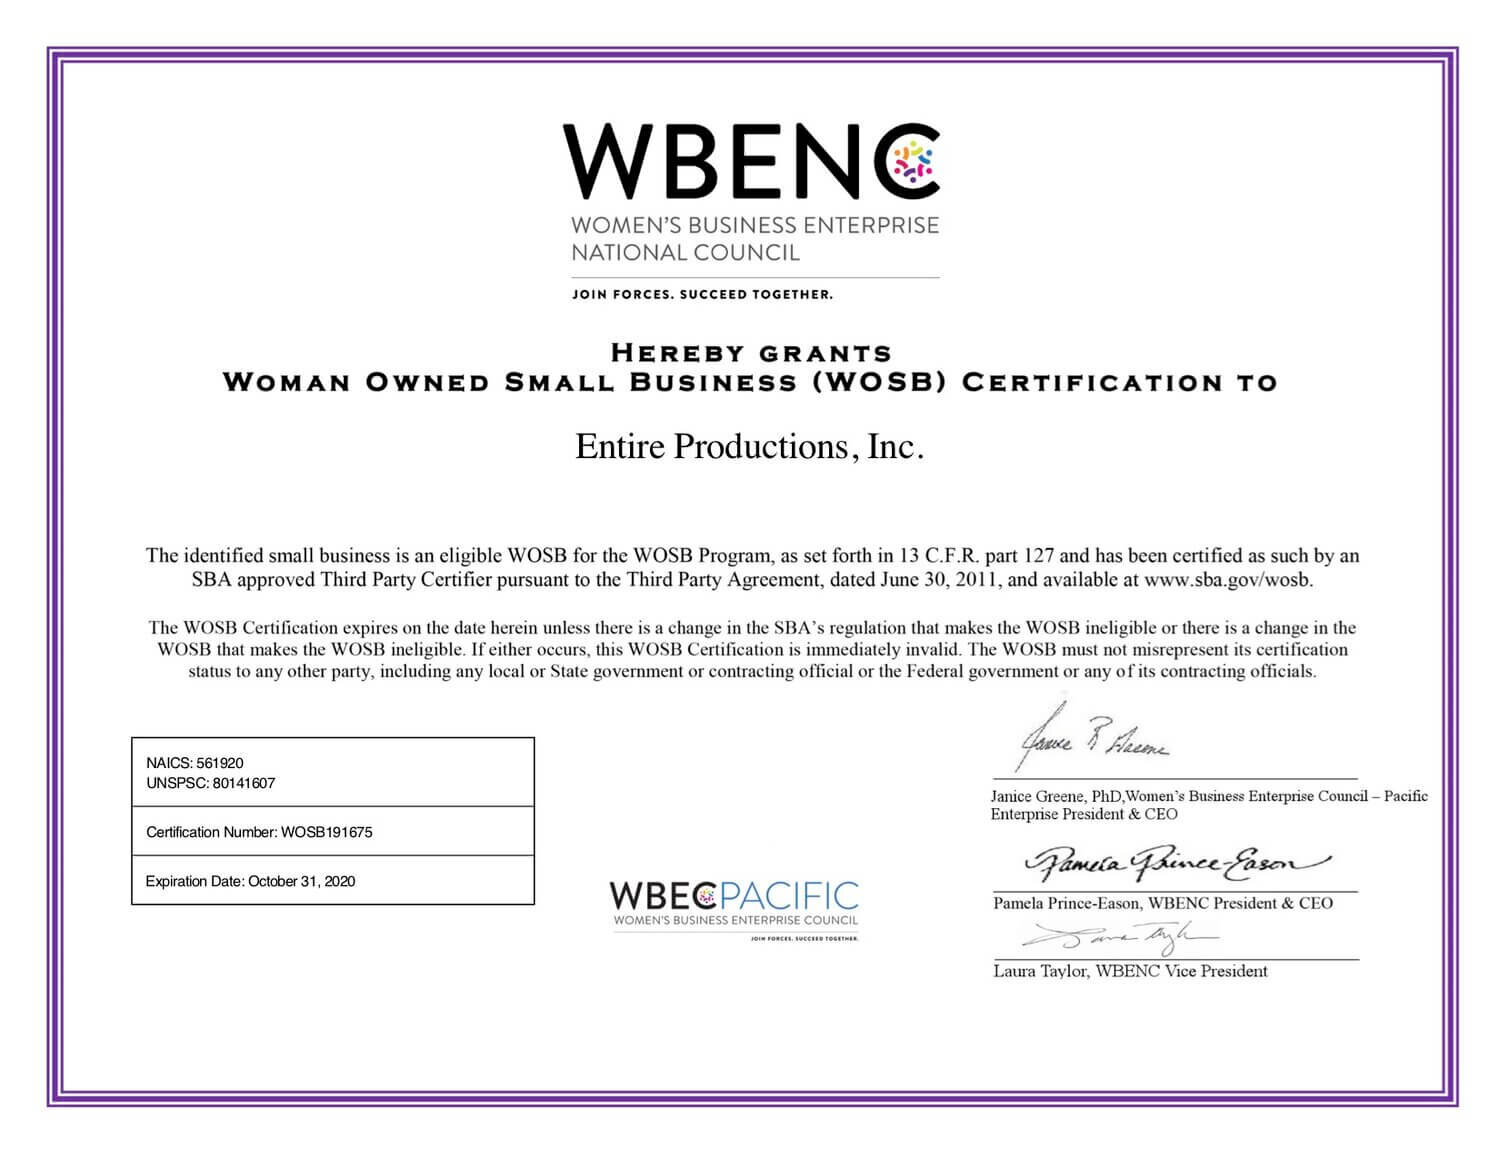 Women Owned Small Business Certificate - Entire Productions, Inc.